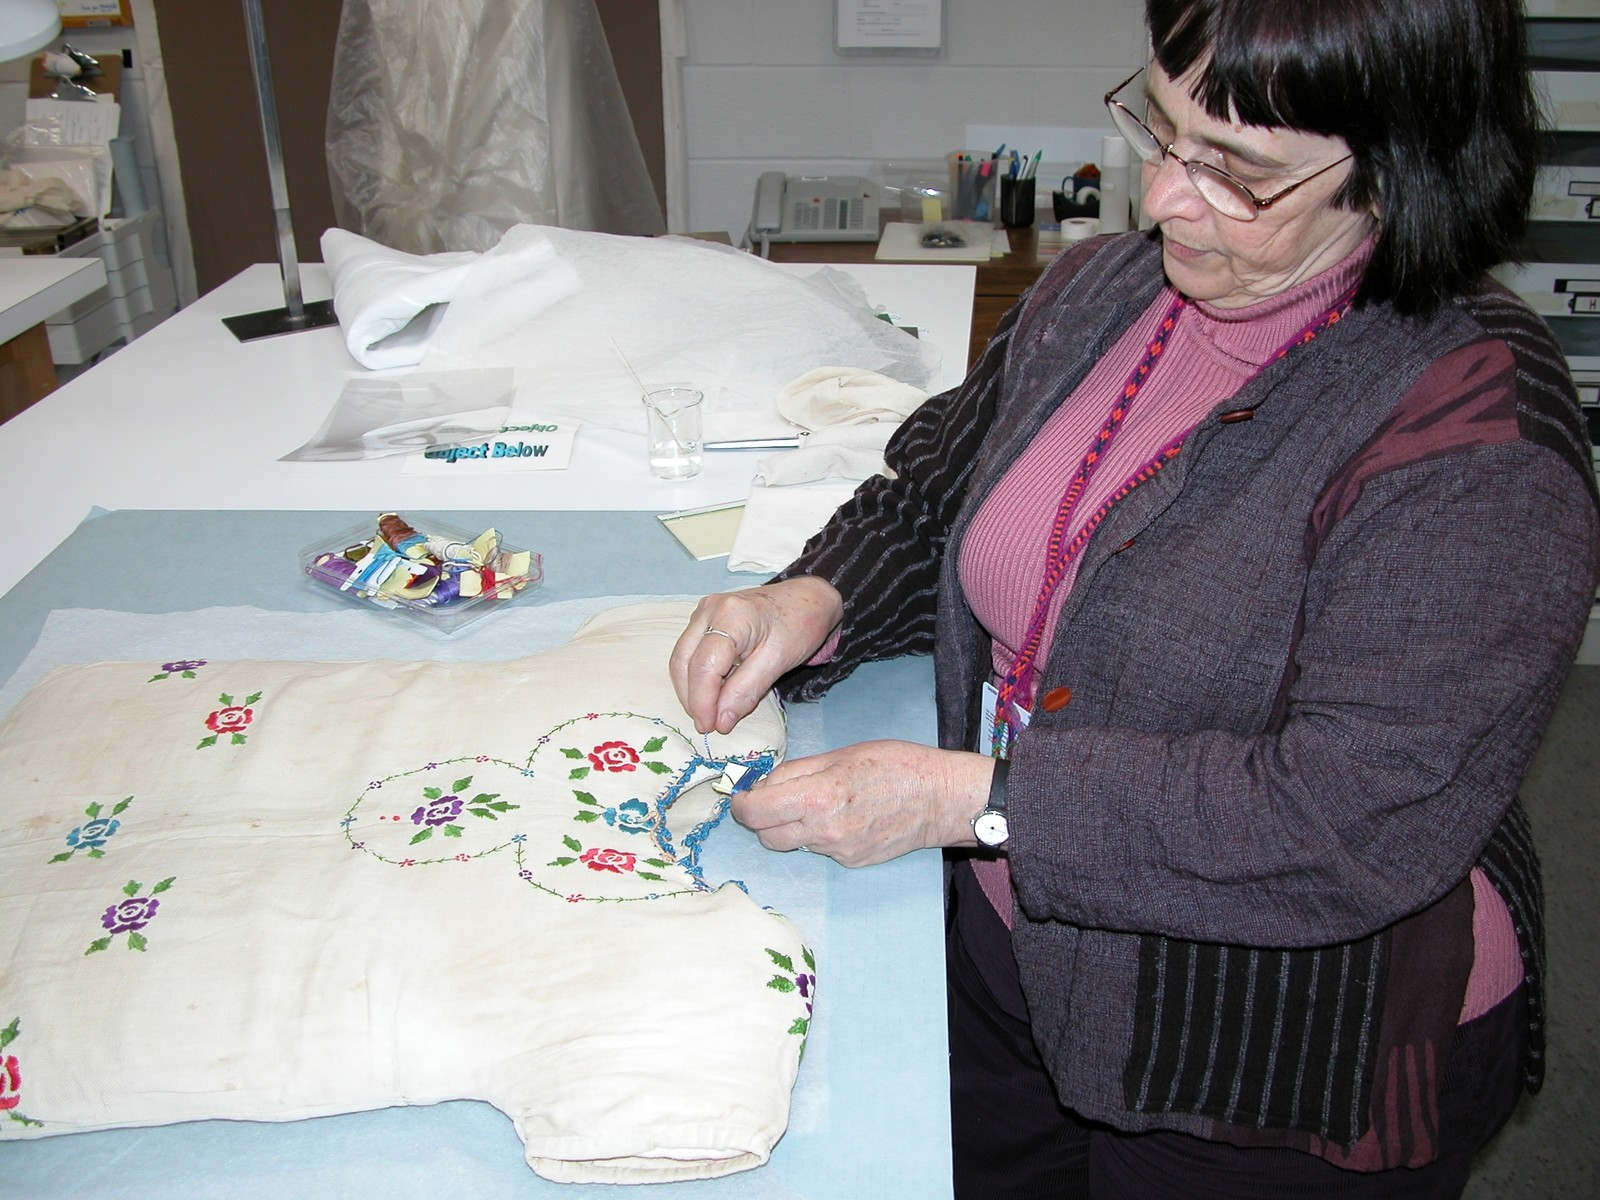 Textile conservator Lizou Fenyvesi repairs a dress worn by a Jewish child while living in hiding in Poland during World War II.  The dress was donated to the U.S. Holocaust Memorial Museum by its owner, Lola Kaufman.